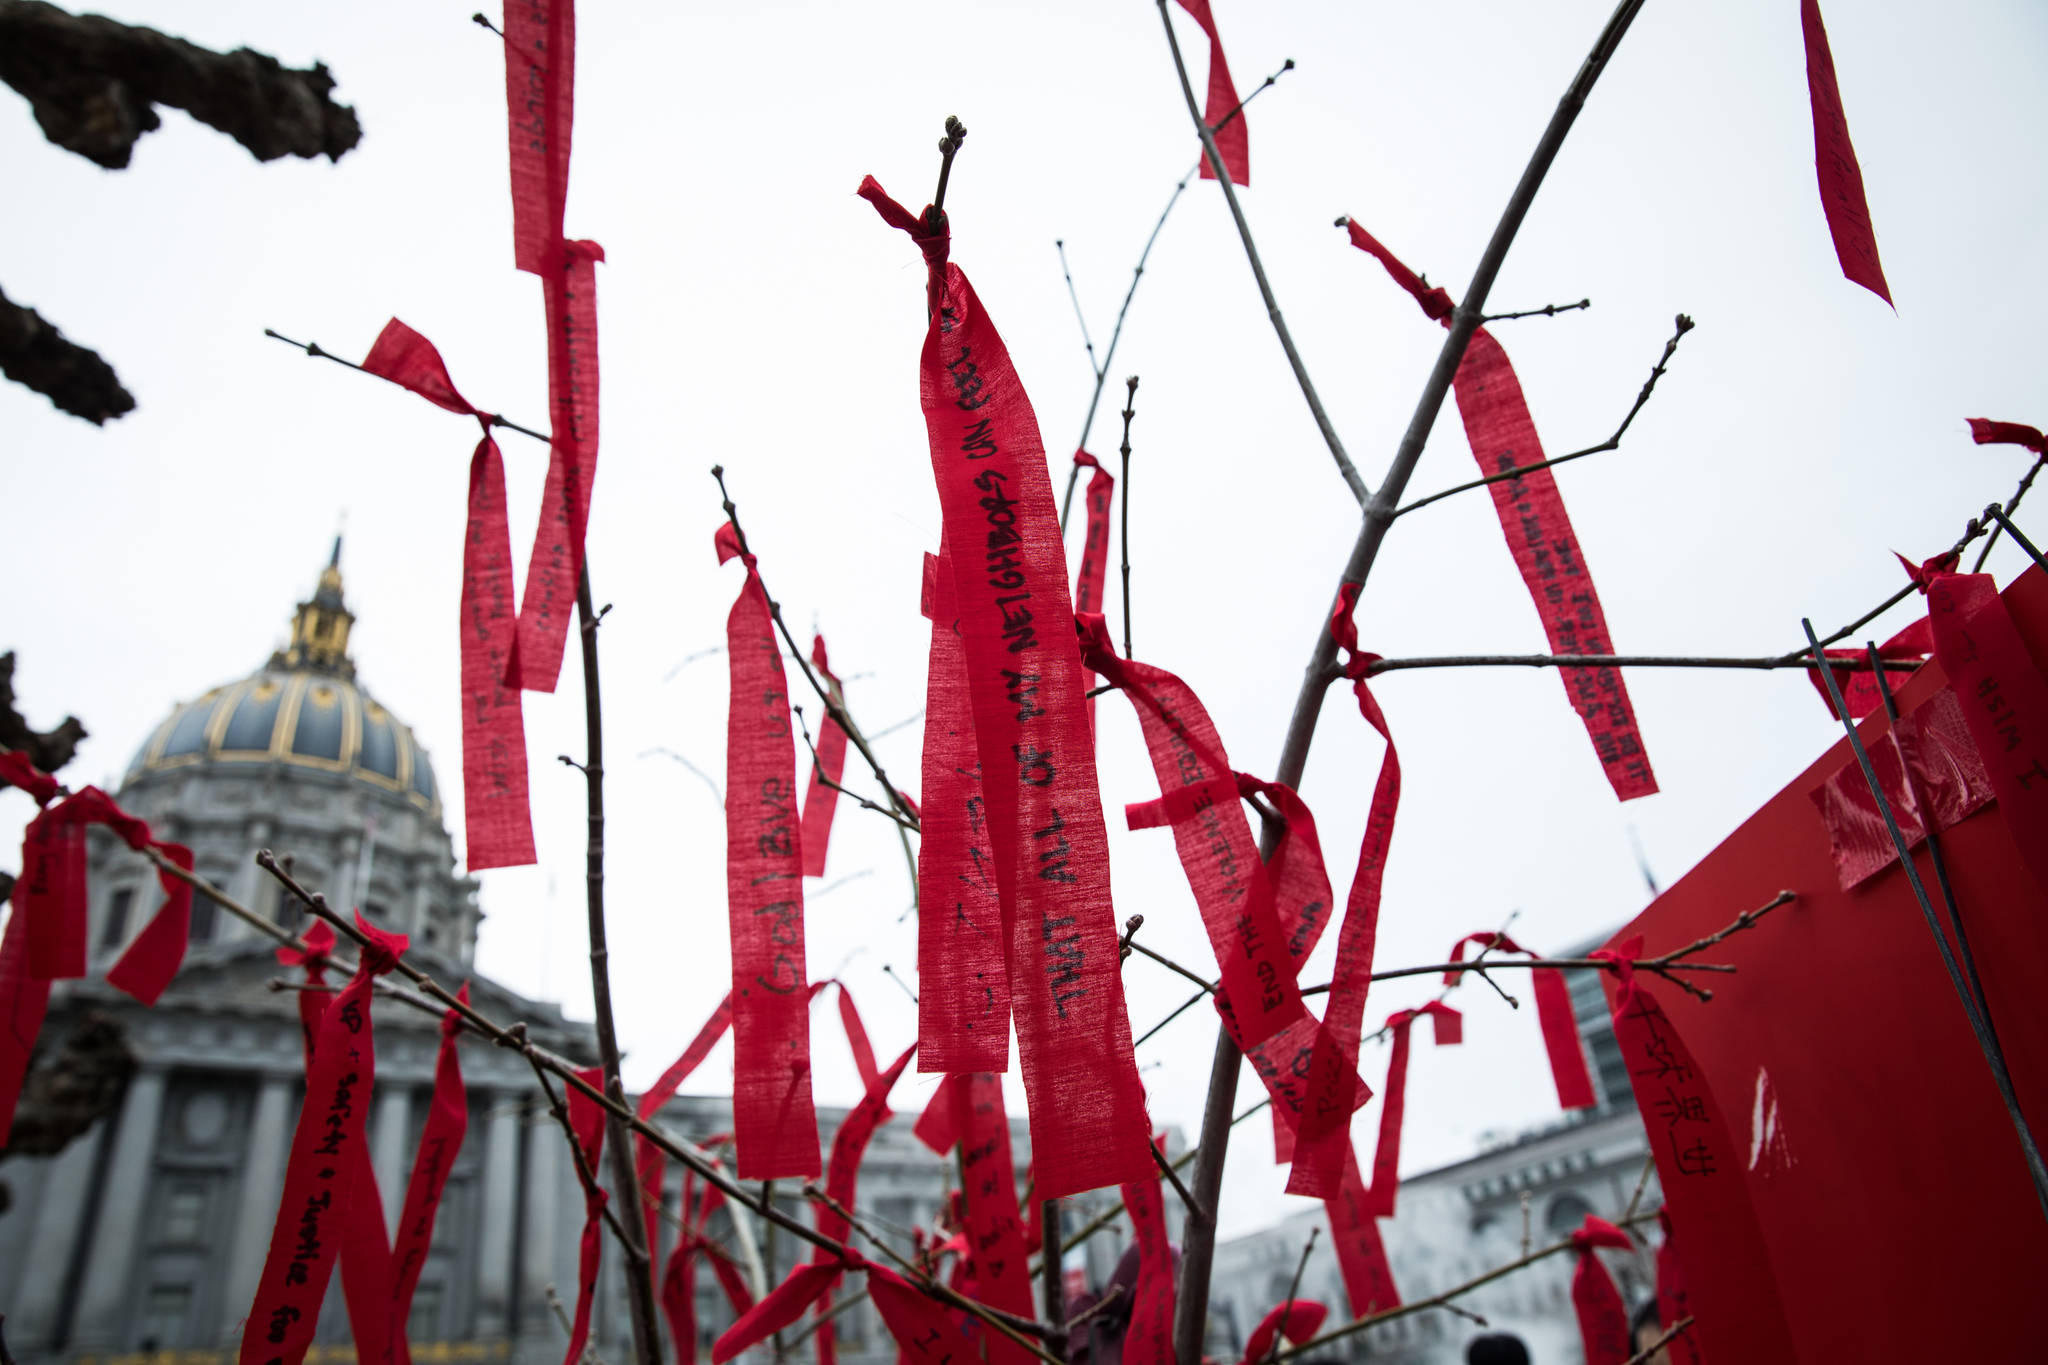 People tied red ribbons to a Wish Tree at Civic Center Plaza during the Love Our People, Heal Our Communities SF event. (Photo by Ekevara Kitpowsong/ Special to S.F. Examiner)